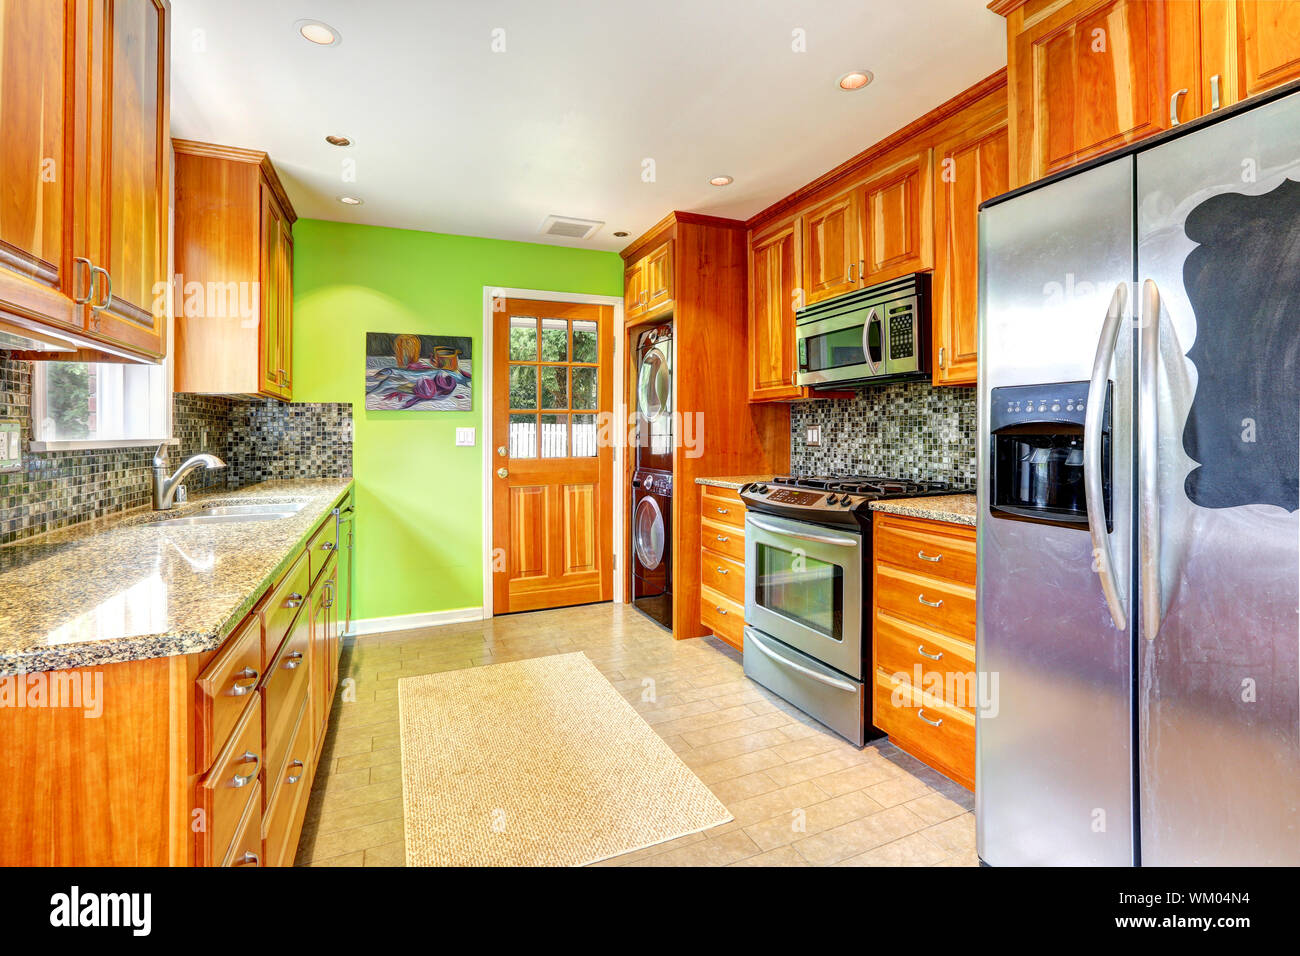 Maple Kitchen Cabinets With Mosaic Back Splash Trim And Granite Tops Bright Kitchen Room With Green Wall Stock Photo Alamy